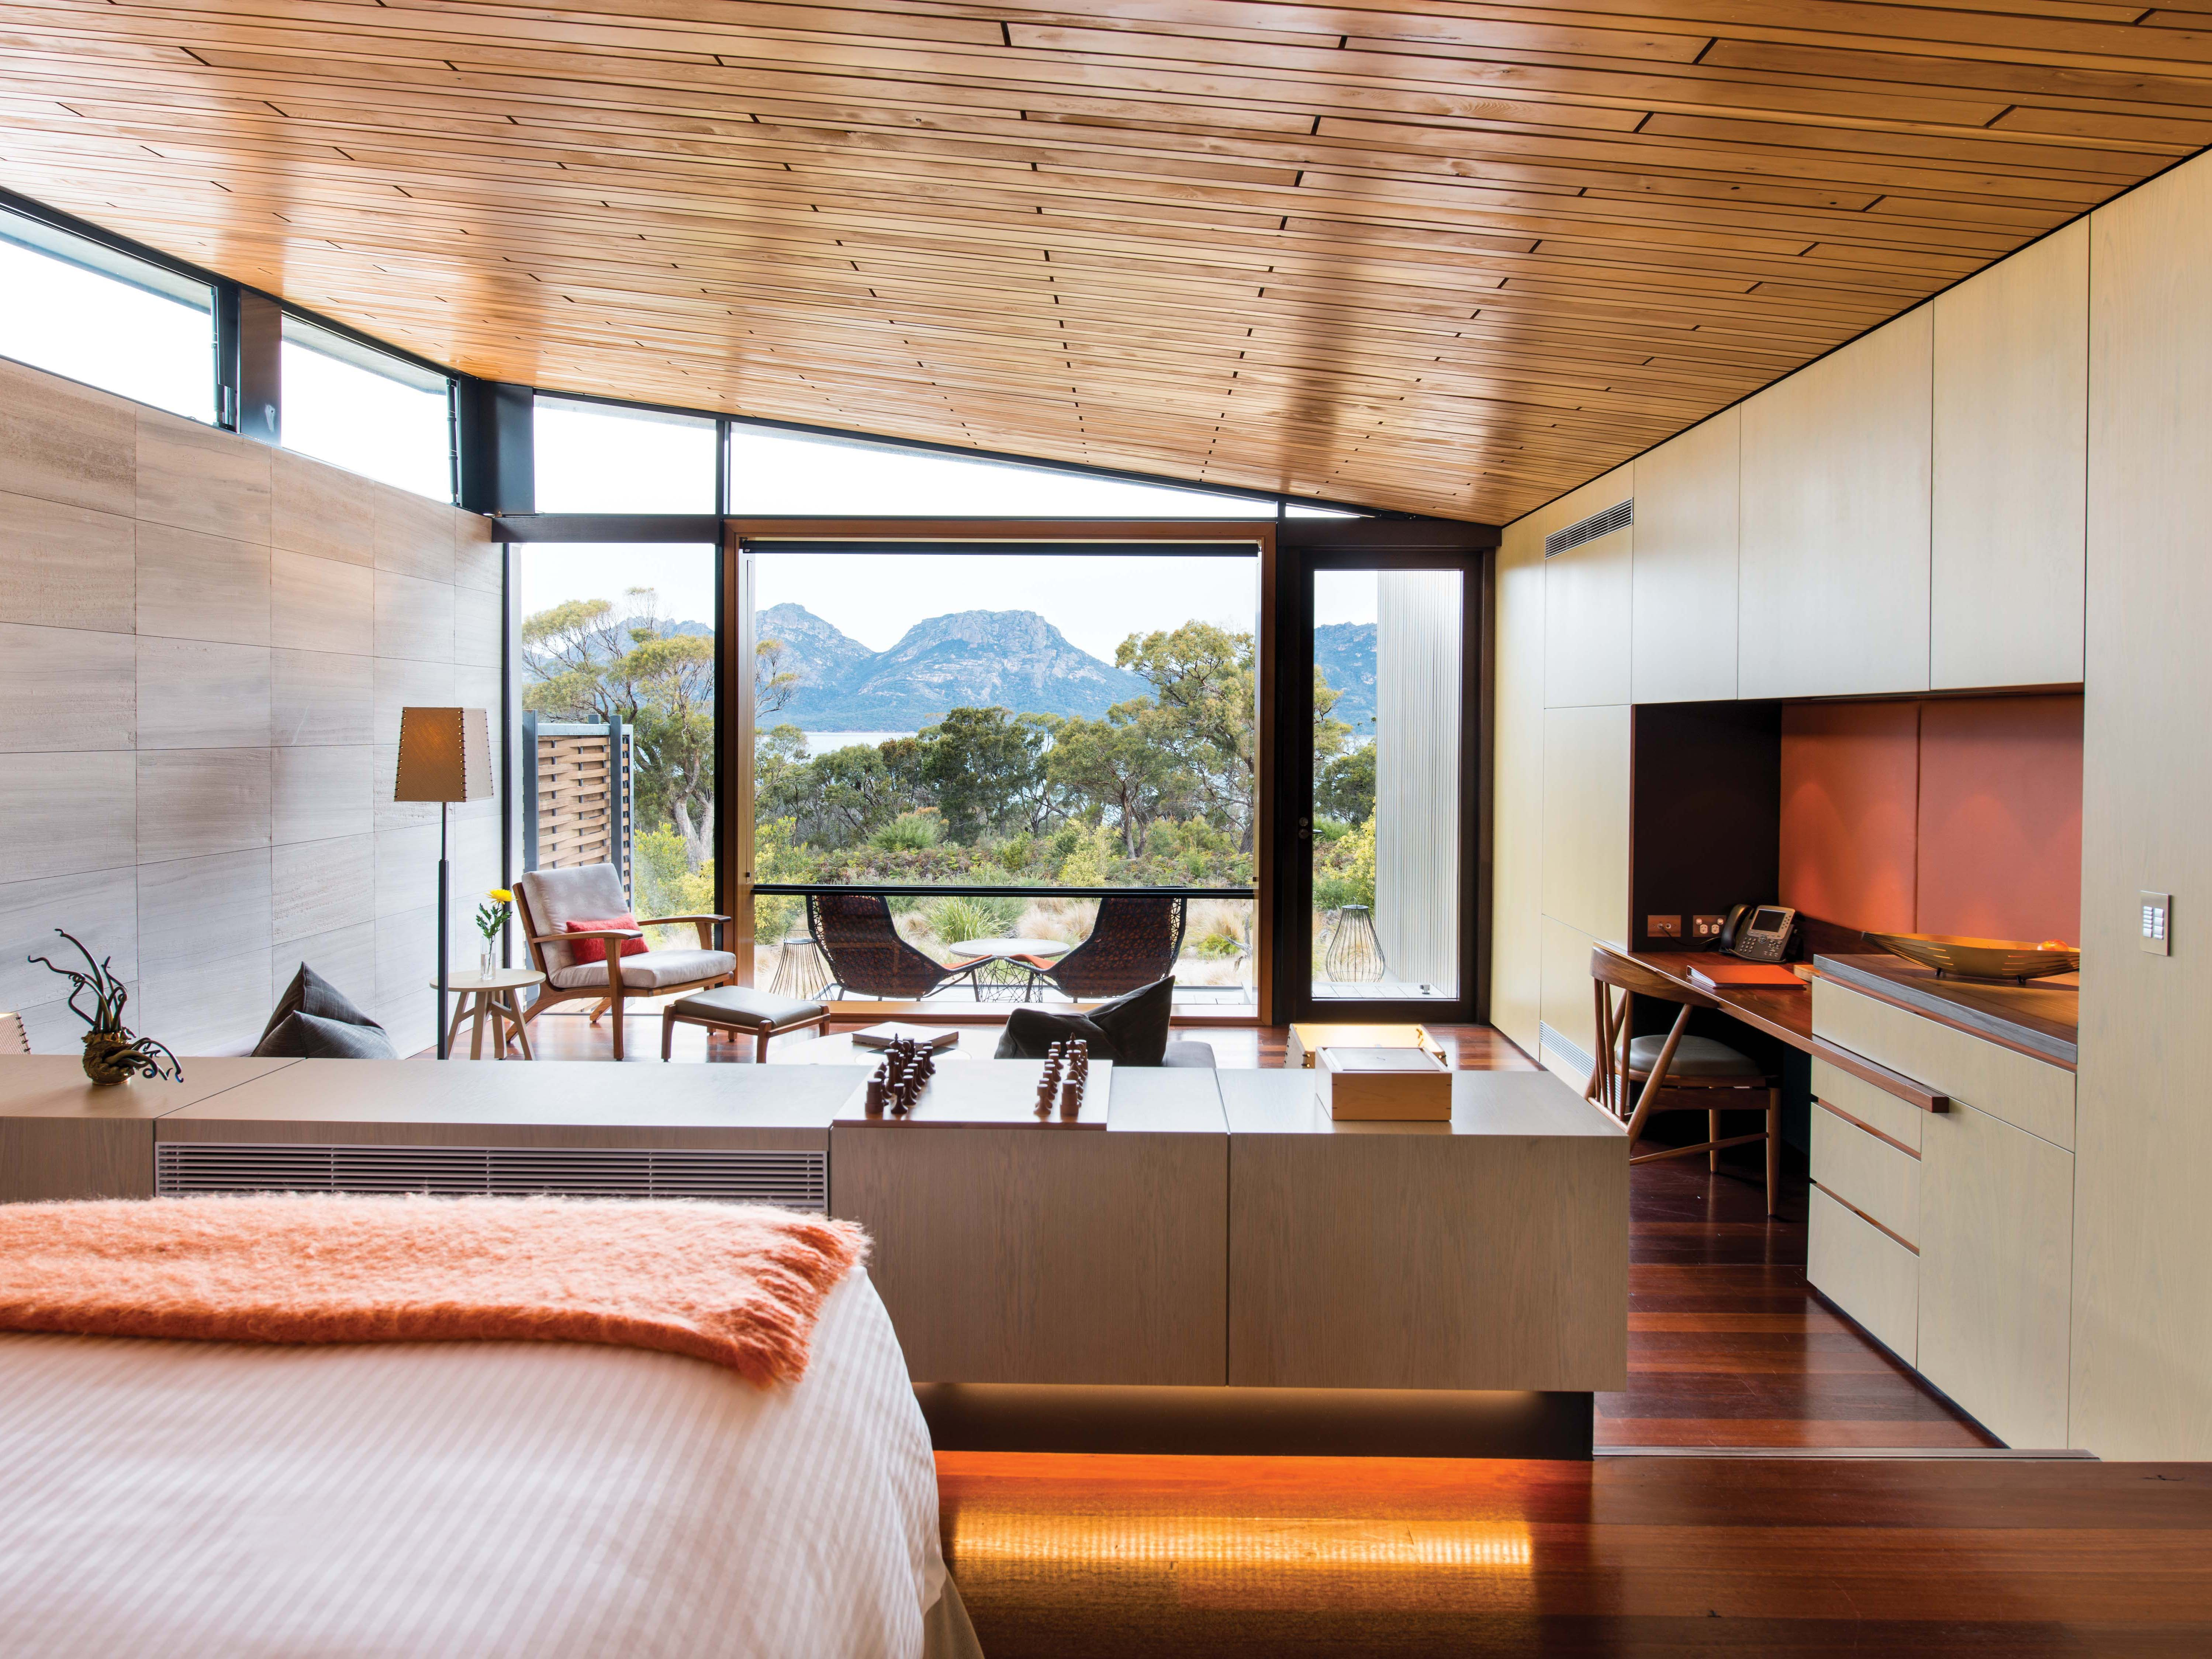 The owners of Saffire Freycinet are committed to environmentally sustainable practices, such as efficient hot-water and lighting usage, using natural air-flow systems, and limiting further impact on the landscape by using insulation and double glazing.